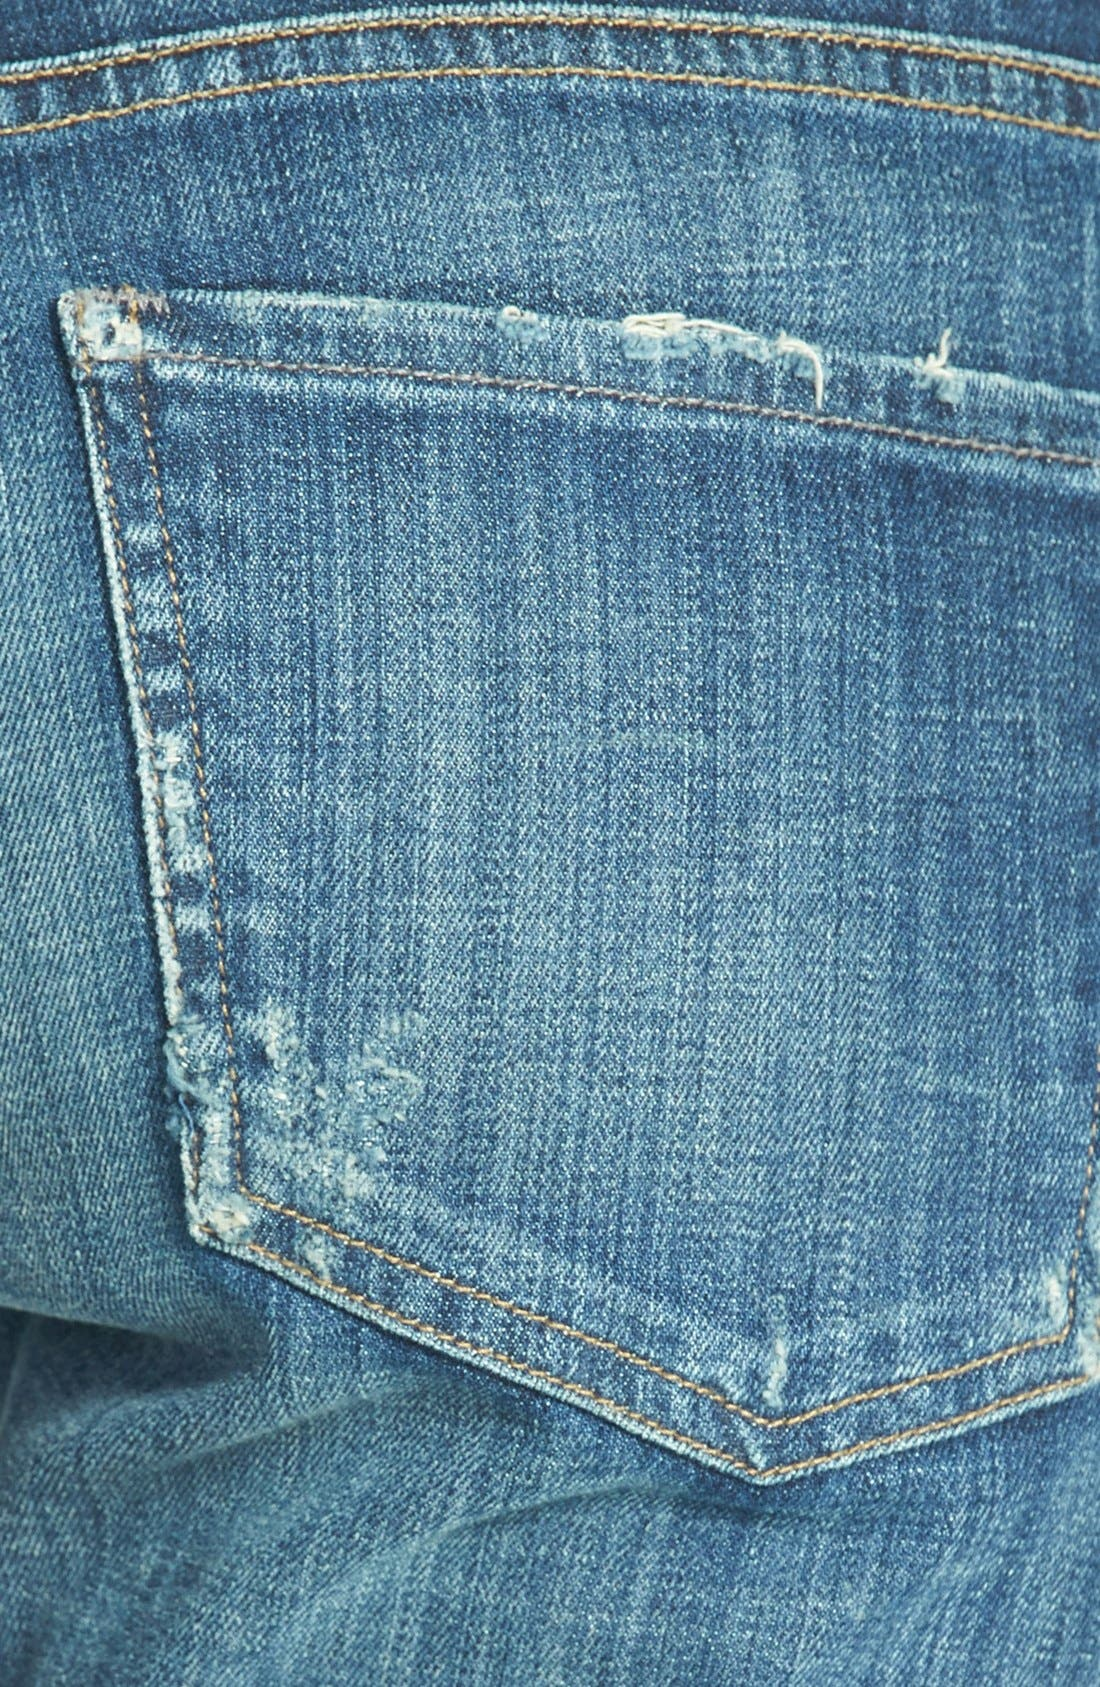 Alternate Image 3  - Citizens of Humanity 'Dylan' Distressed Straight Leg Jeans (Nomad)